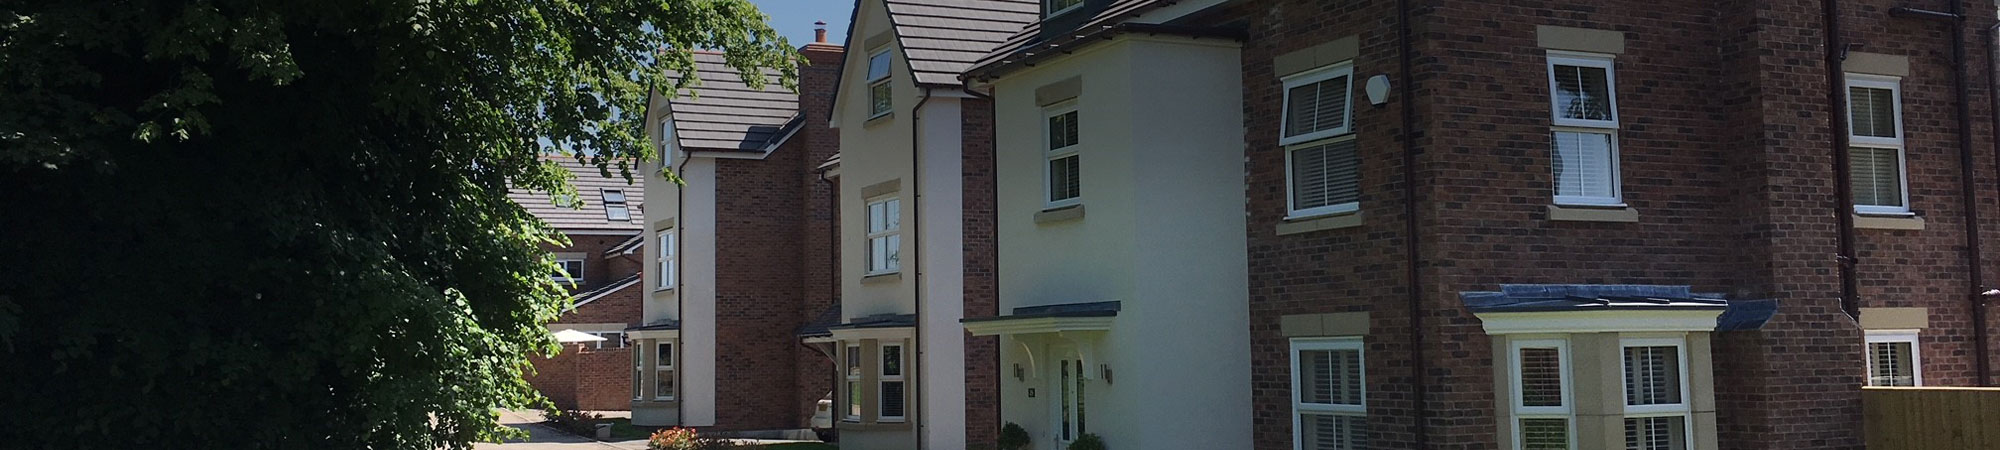 Housing development in Wrexham